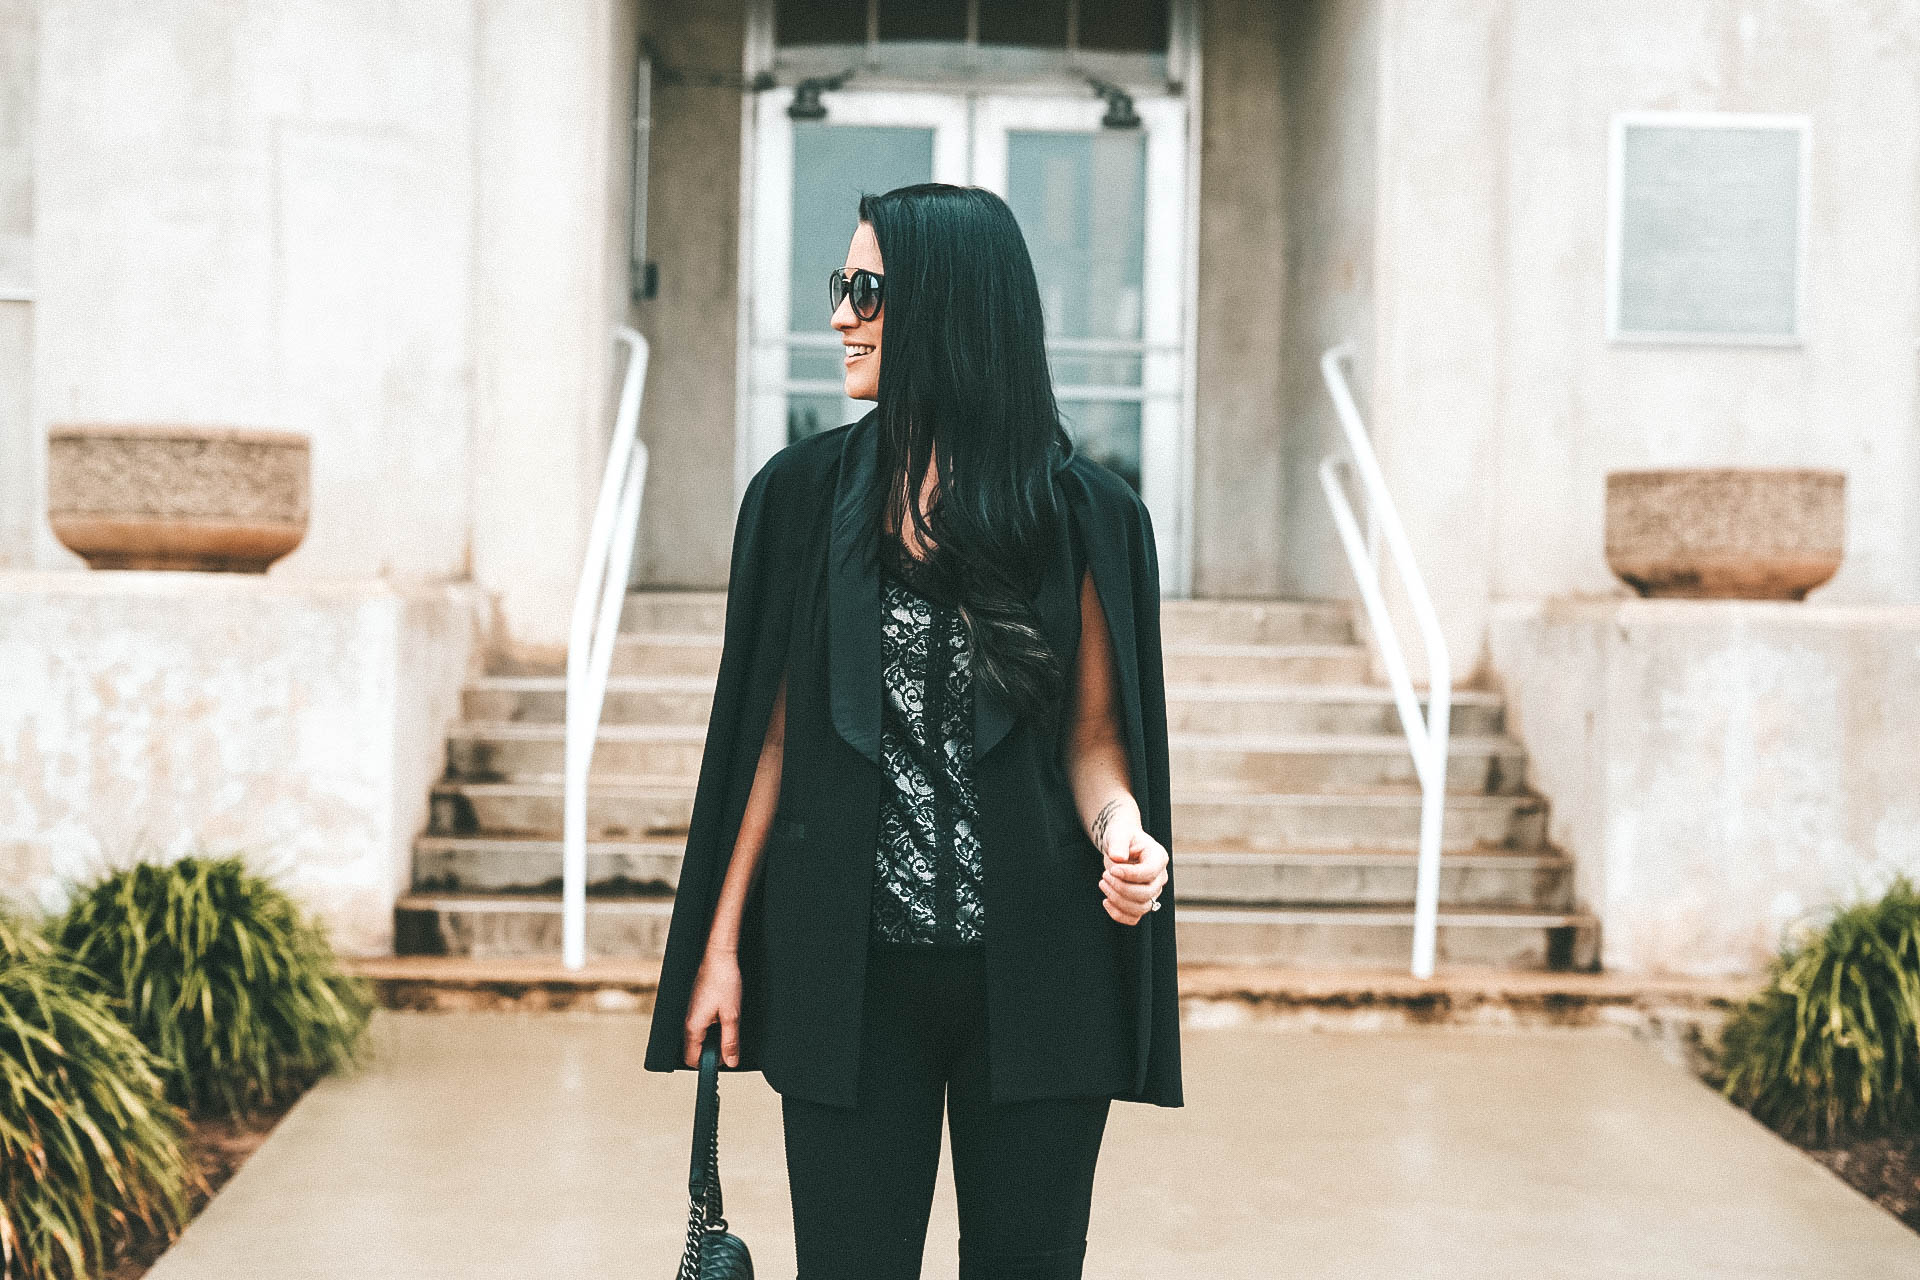 DTKAustin is sharing a major sale alert on the Laundry by Shelli Segal site. This black tuxedo cape and lace cami are both on sale. - Shelli Segal Removable Tuxedo Cap by popular Austin style blogger Dressed to Kill